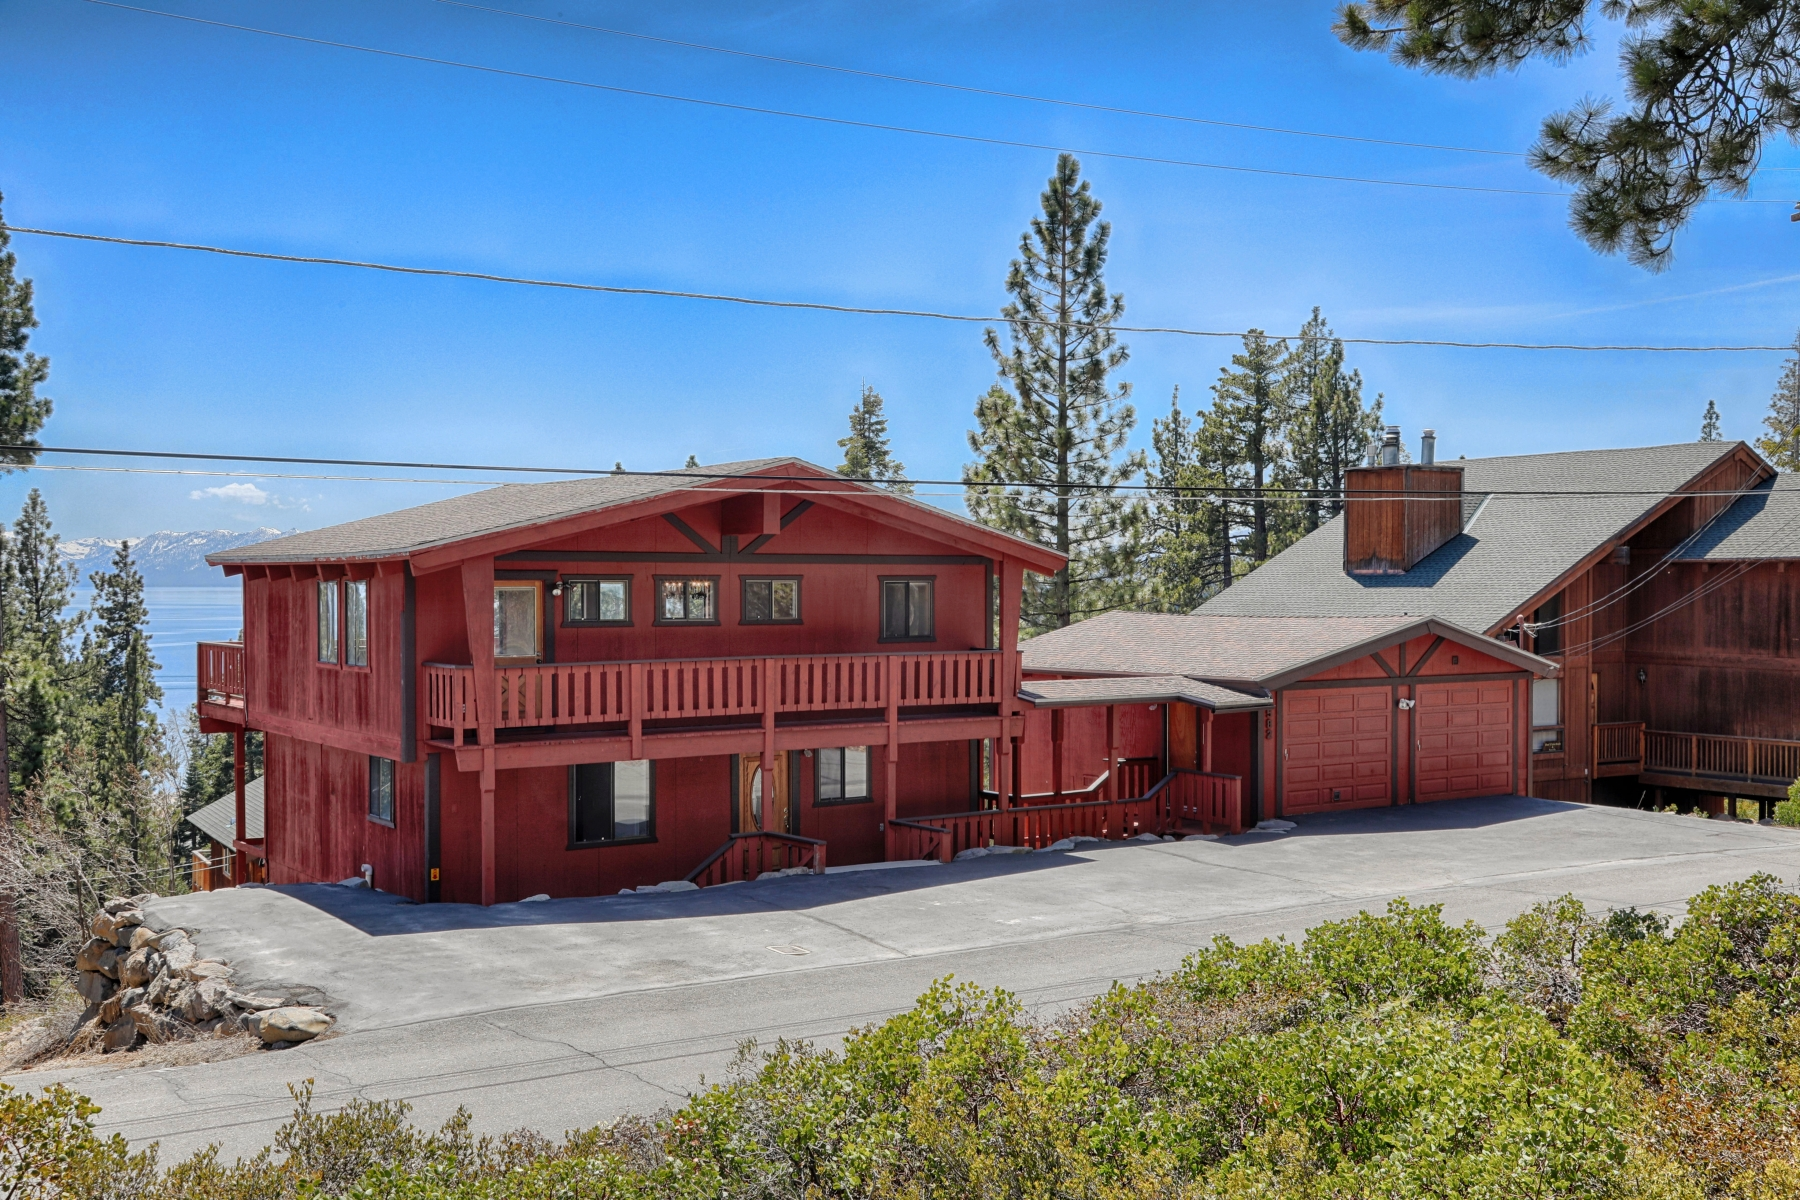 Single Family Home for Active at 6582 Idlewood Road, Tahoe Vista Ca 96148 6582 Idlewood Road Tahoe Vista, California 96148 United States